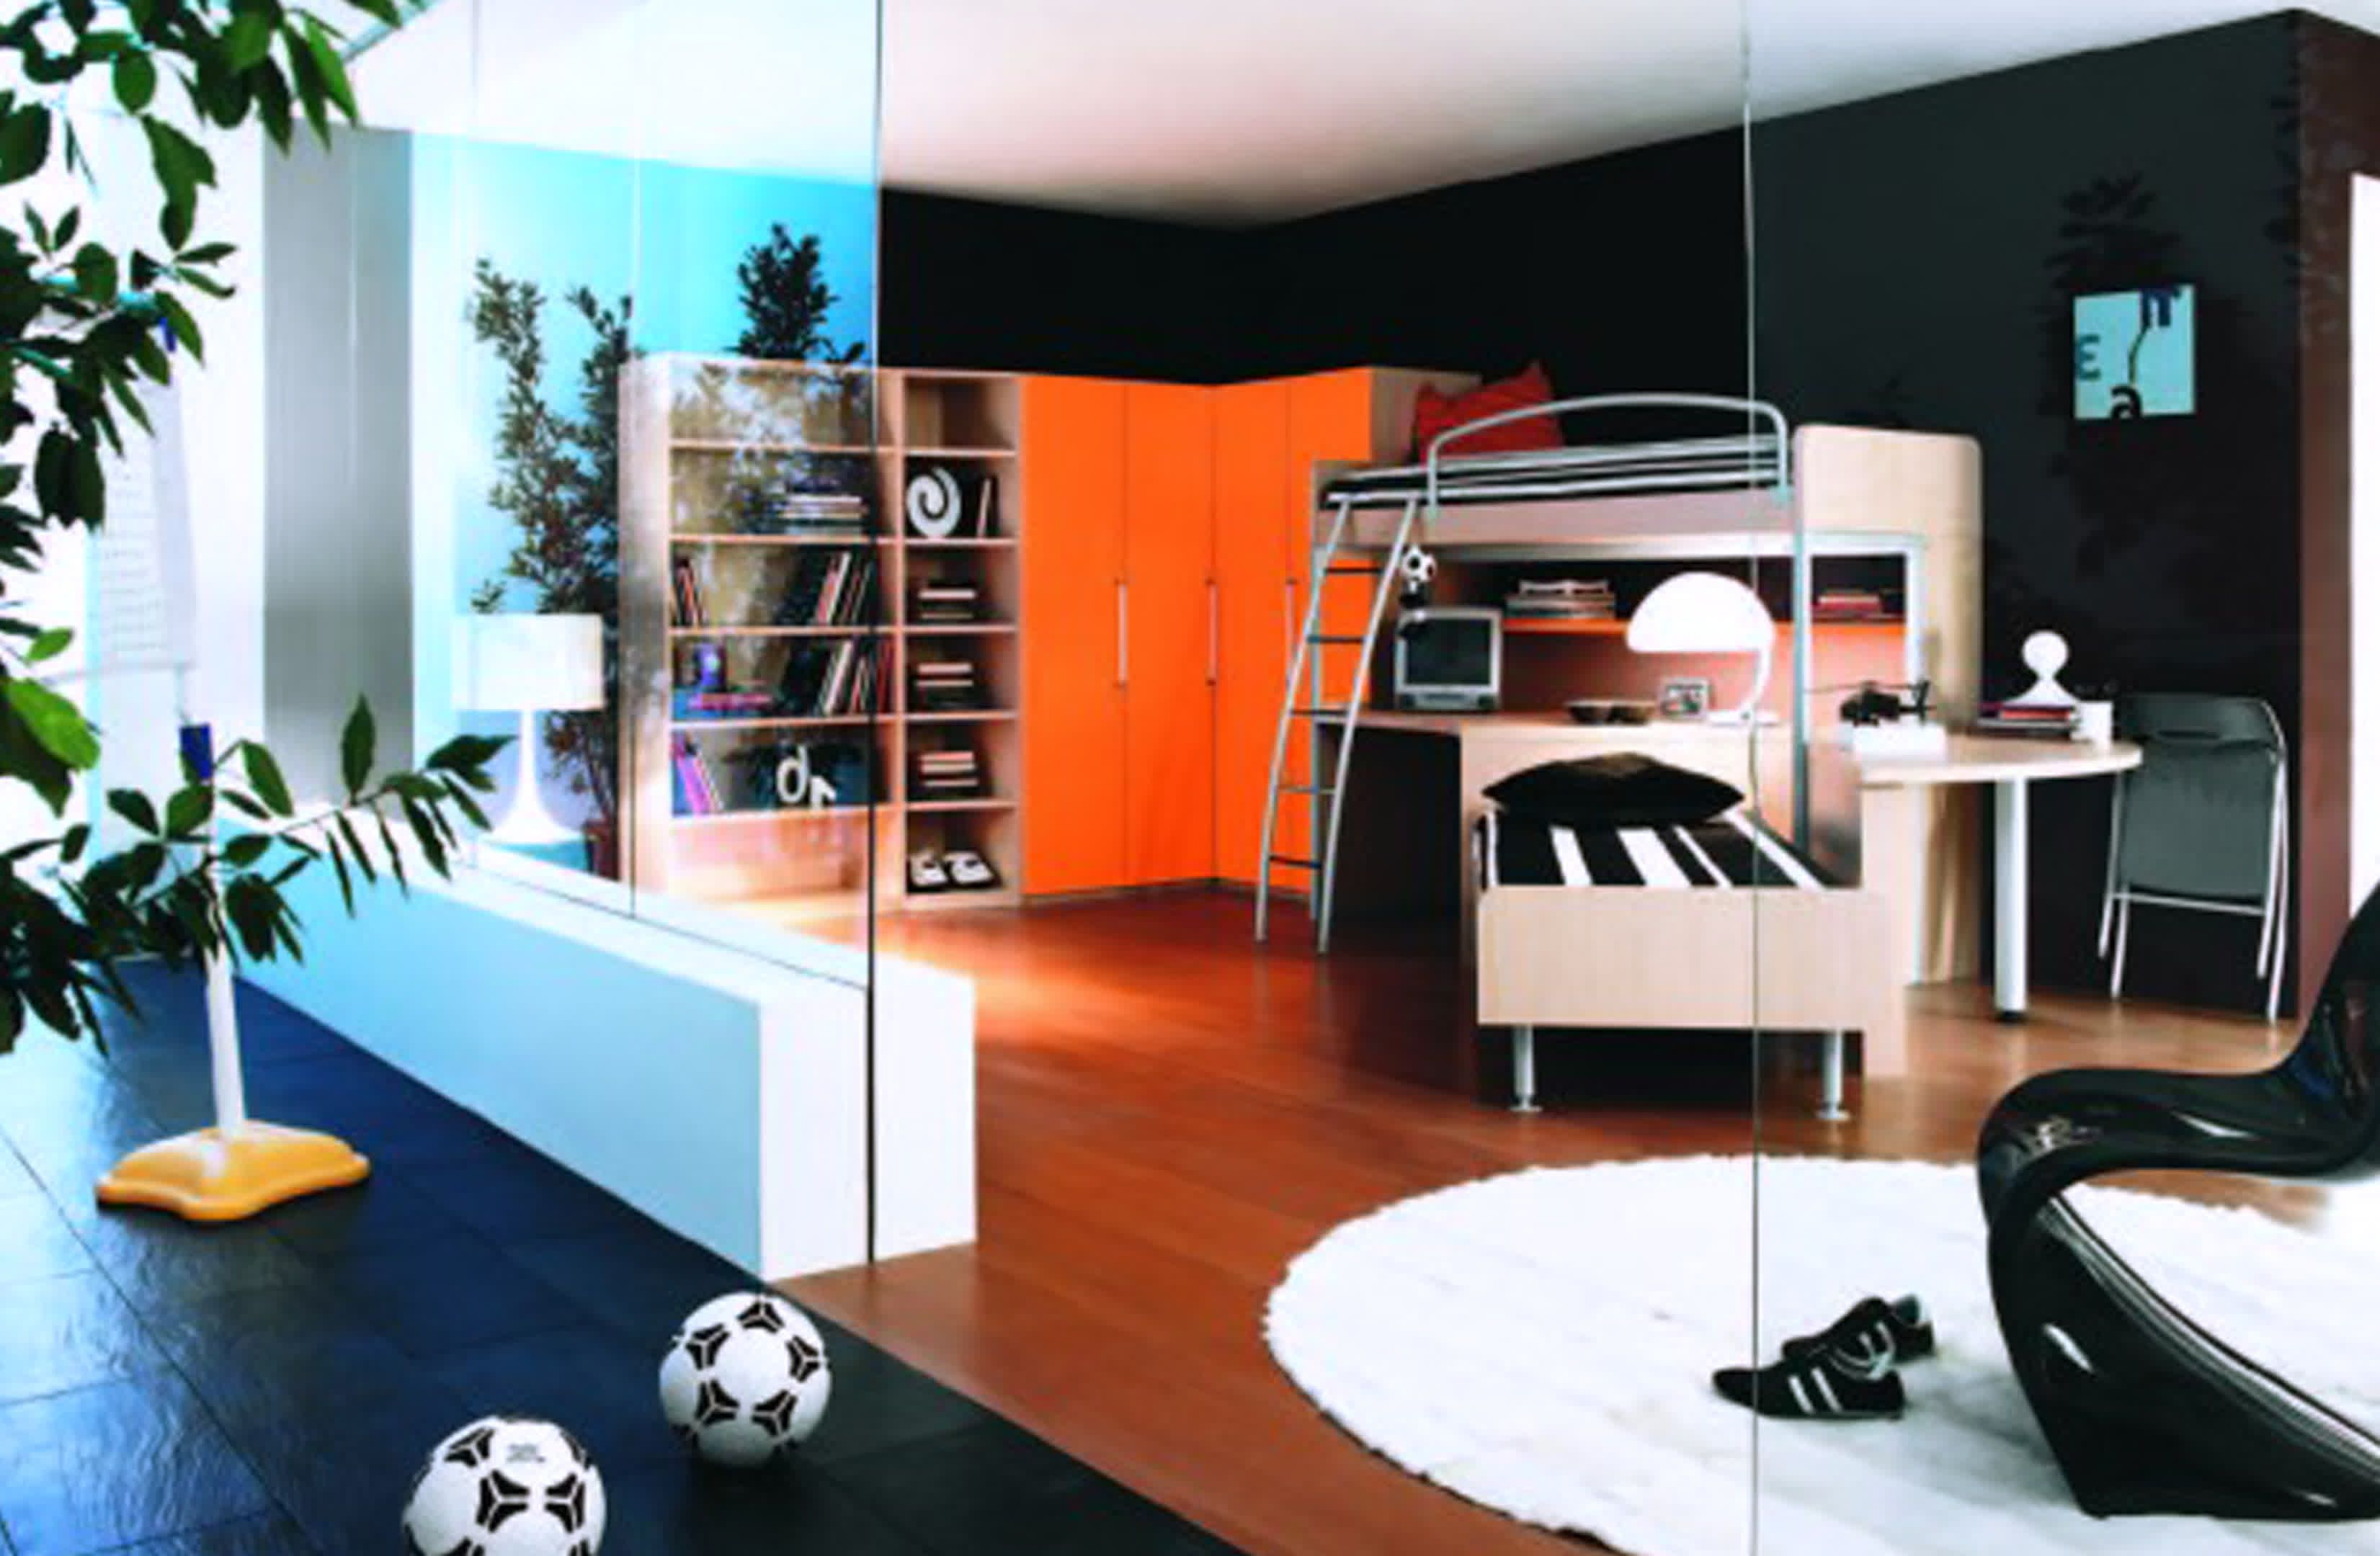 Schlafzimmer Für Jungs Cool Inspirations Bedroom Designs Girls Decorating Ideas For Your | Teenager Zimmer, Schlafzimmer Design, Coole Betten Für Jugendliche